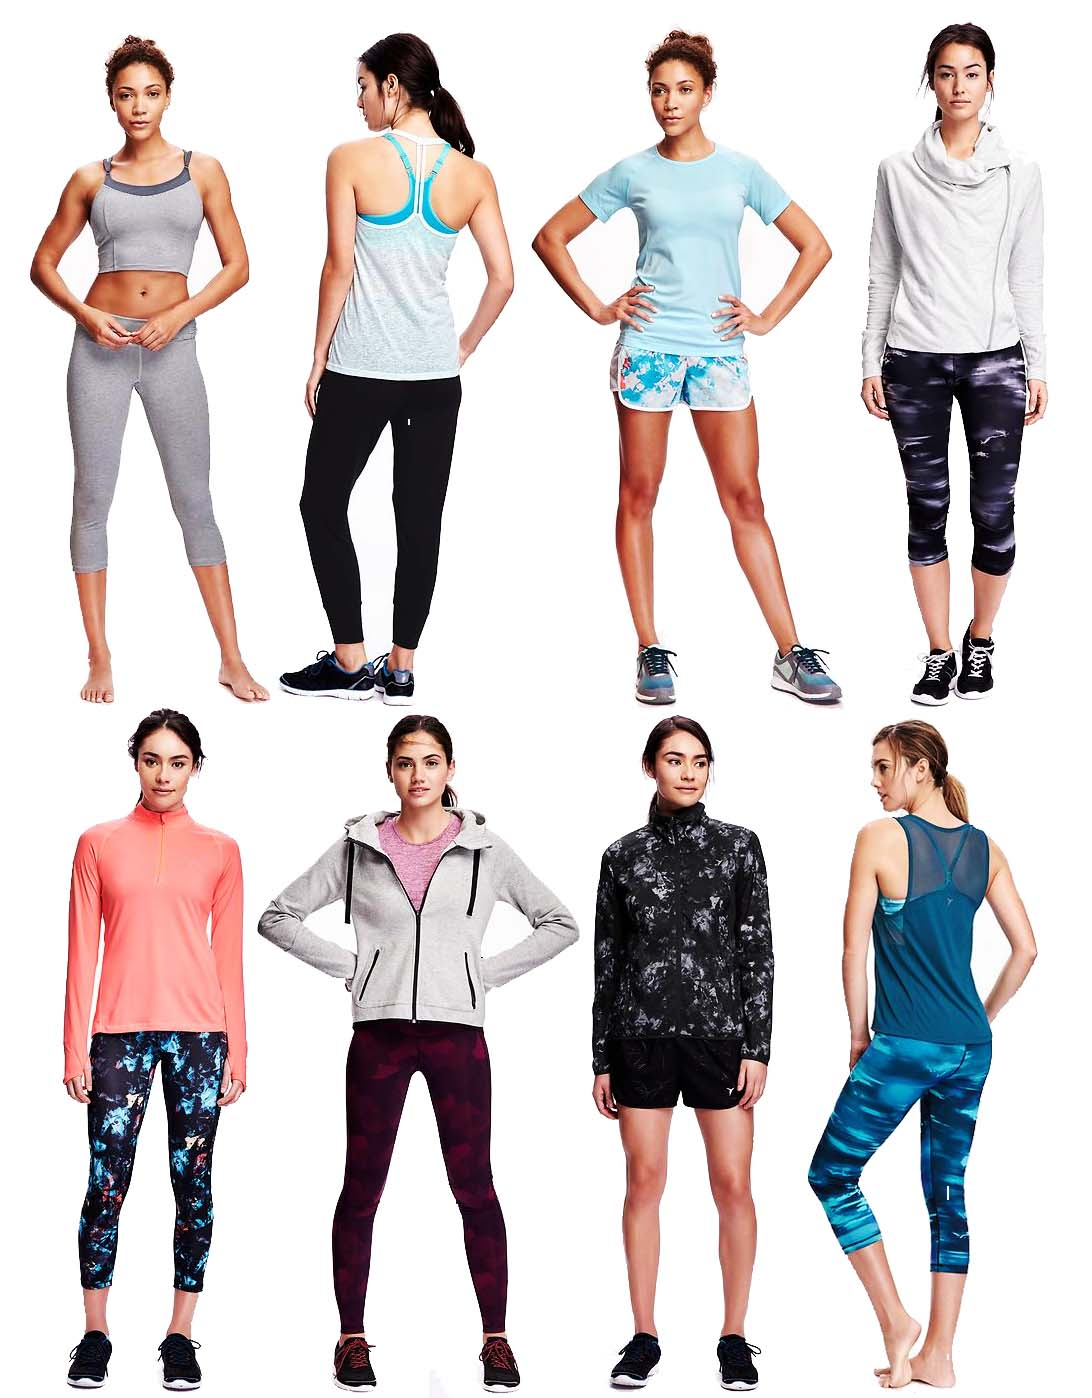 49bdd9af8e Old Navy Active: Workout Gear & Running Outfits for Cheap